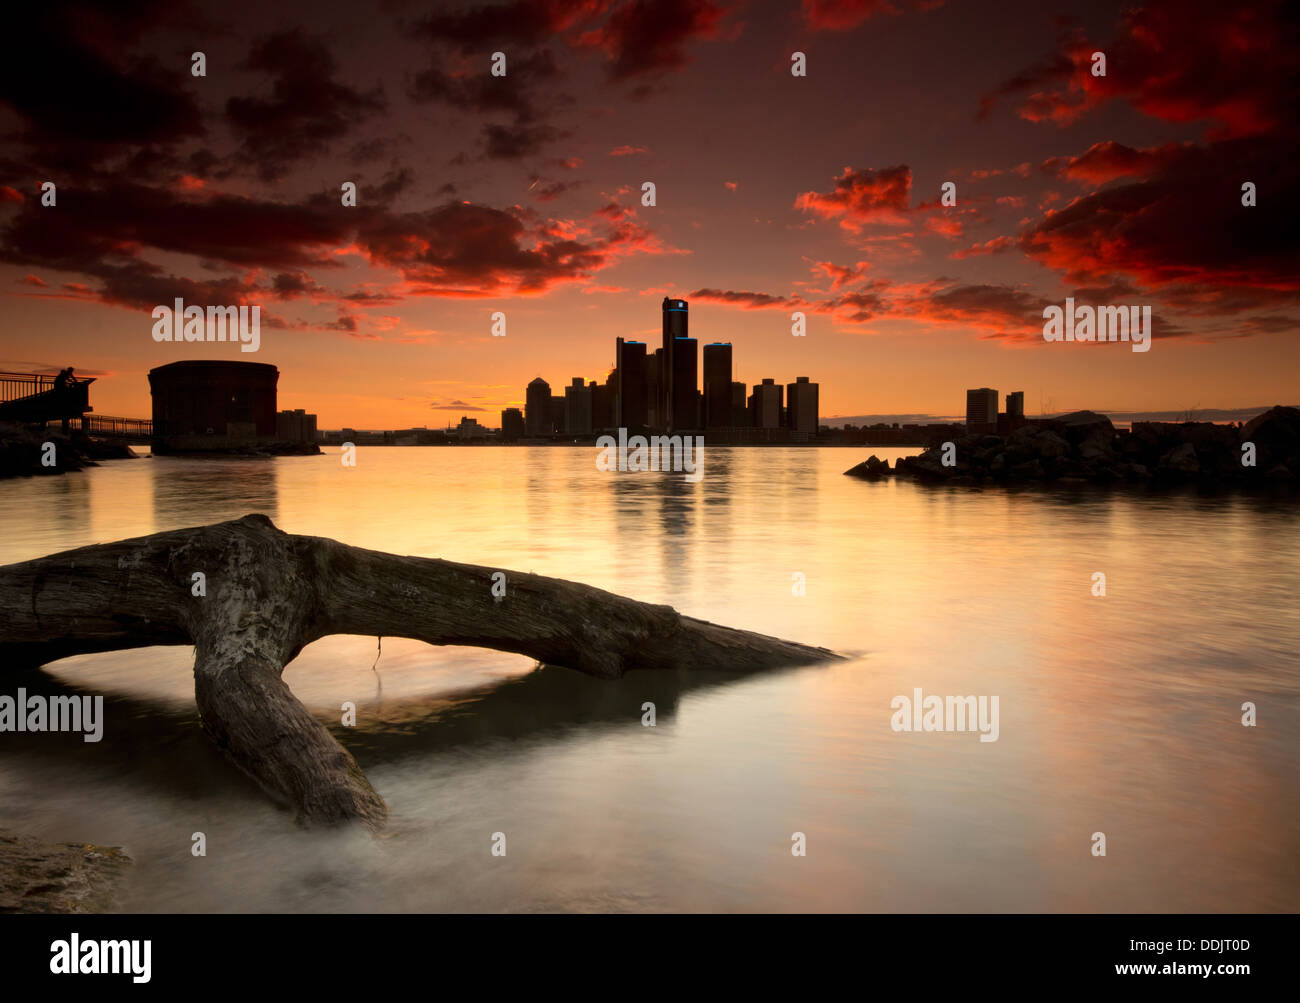 The Detroit Skyline at sunset viewed from Windsor, Ontario, Canada. - Stock Image